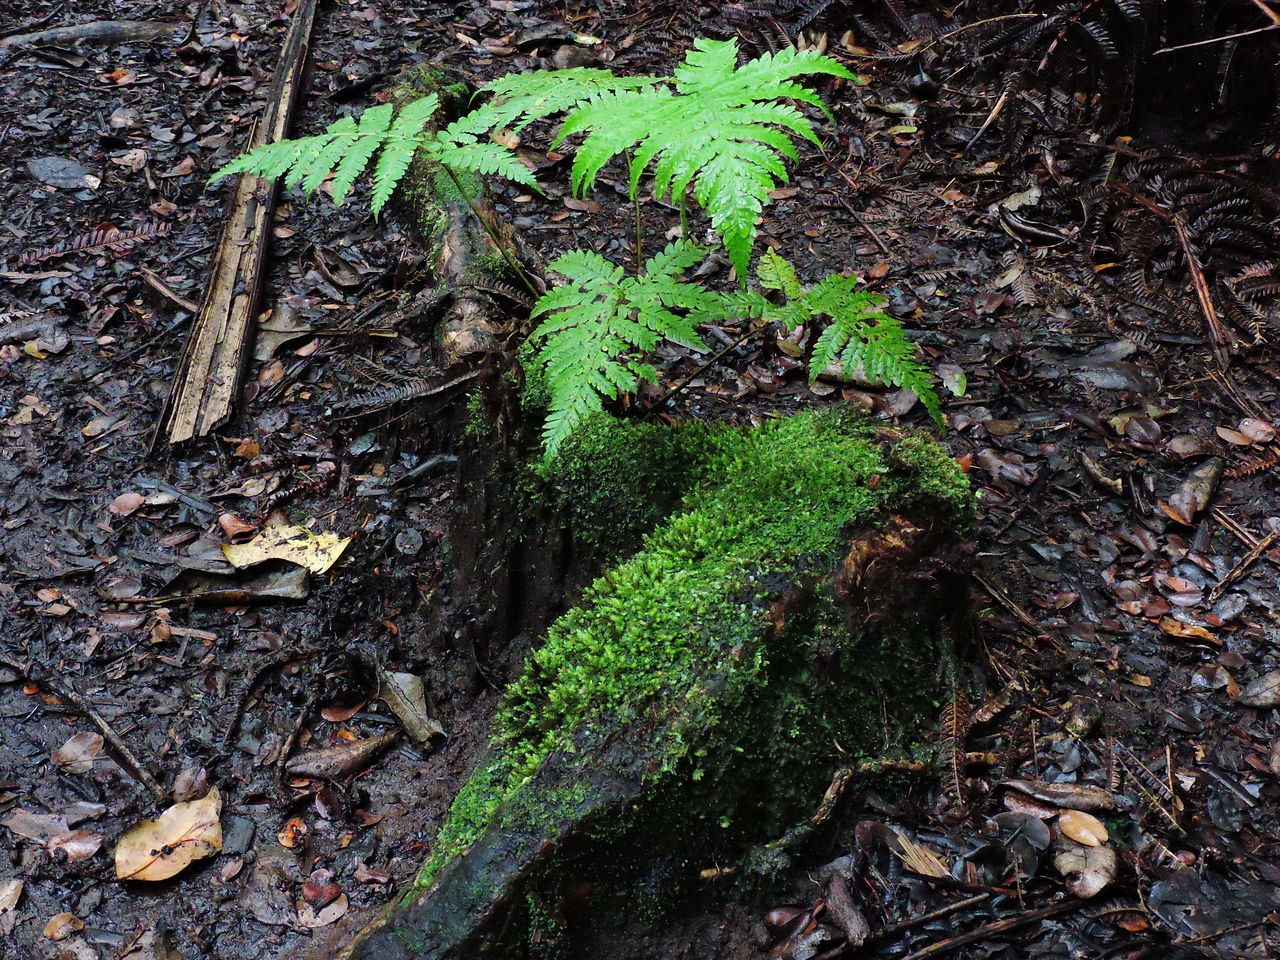 Beauty In Nature Close-up Day Fern Fragility Green Color Growth High Angle View Leaf Nature No People Outdoors Plant Root Thick